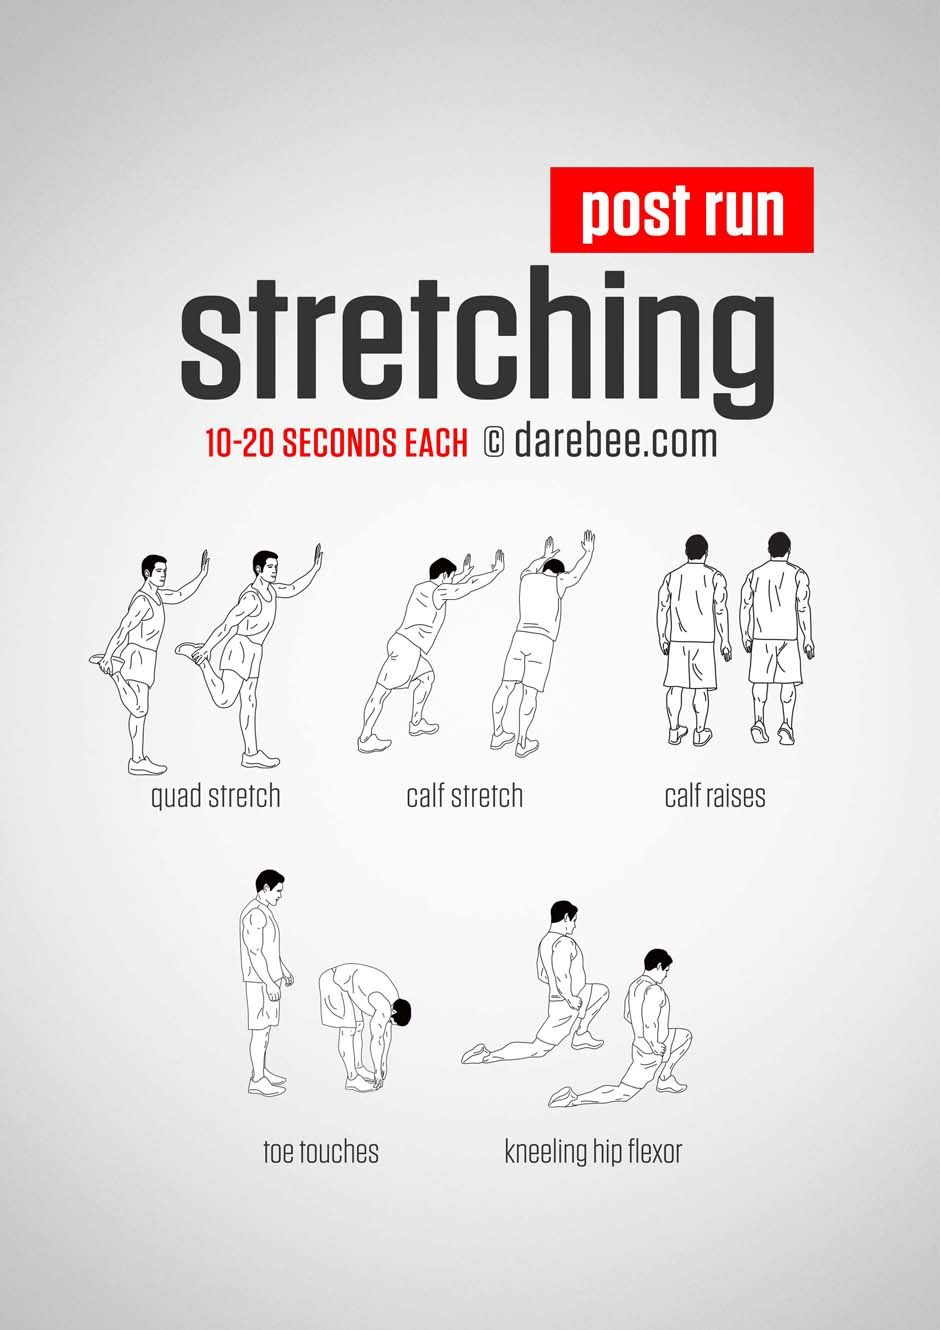 Download high resolution pdf poster post workout